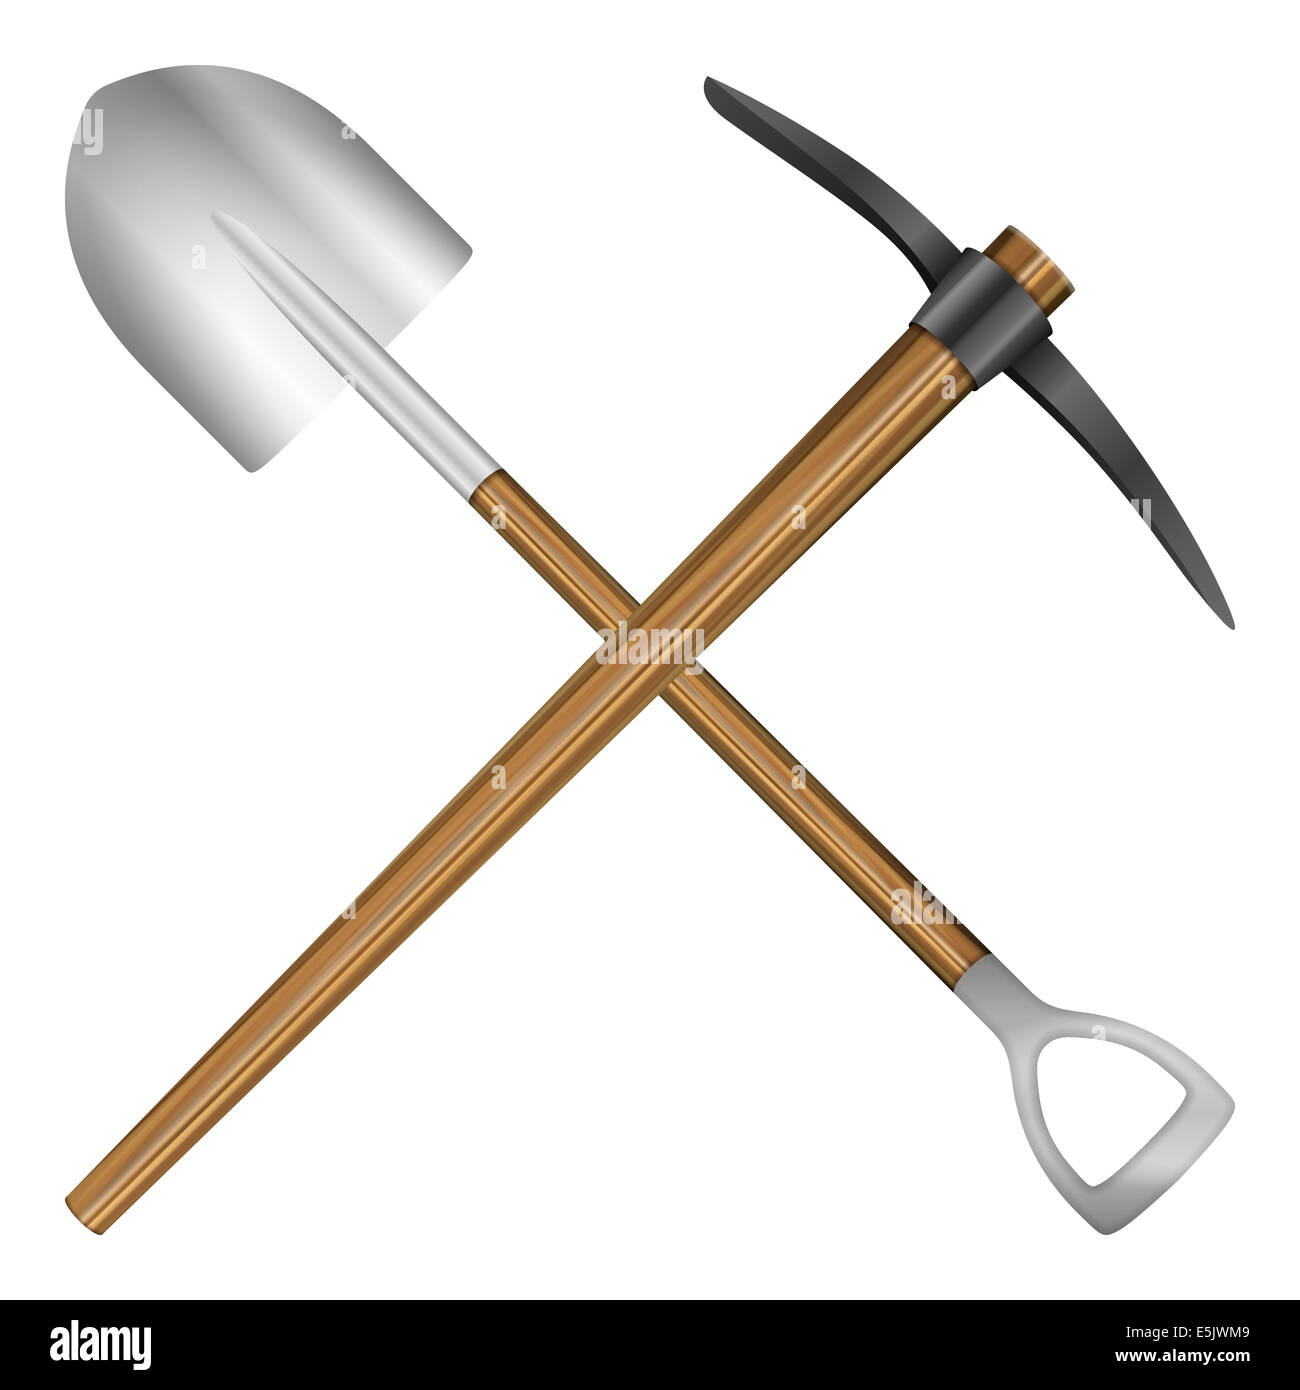 Shovel And Mattock On A White Background. Vector Illustration.   Stock Image